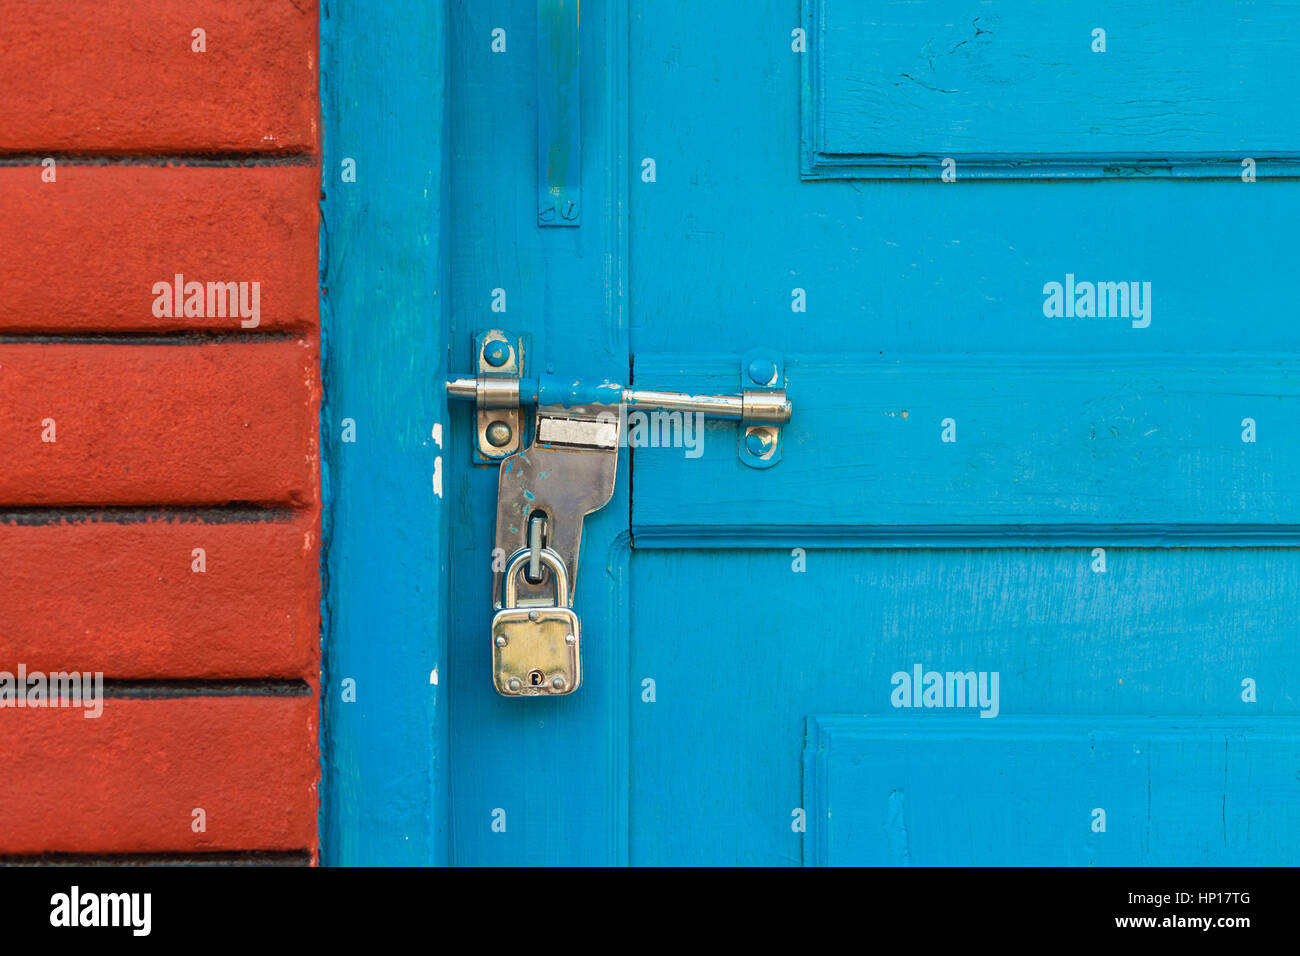 Padlocked door with bolt on the Indian subcontinent